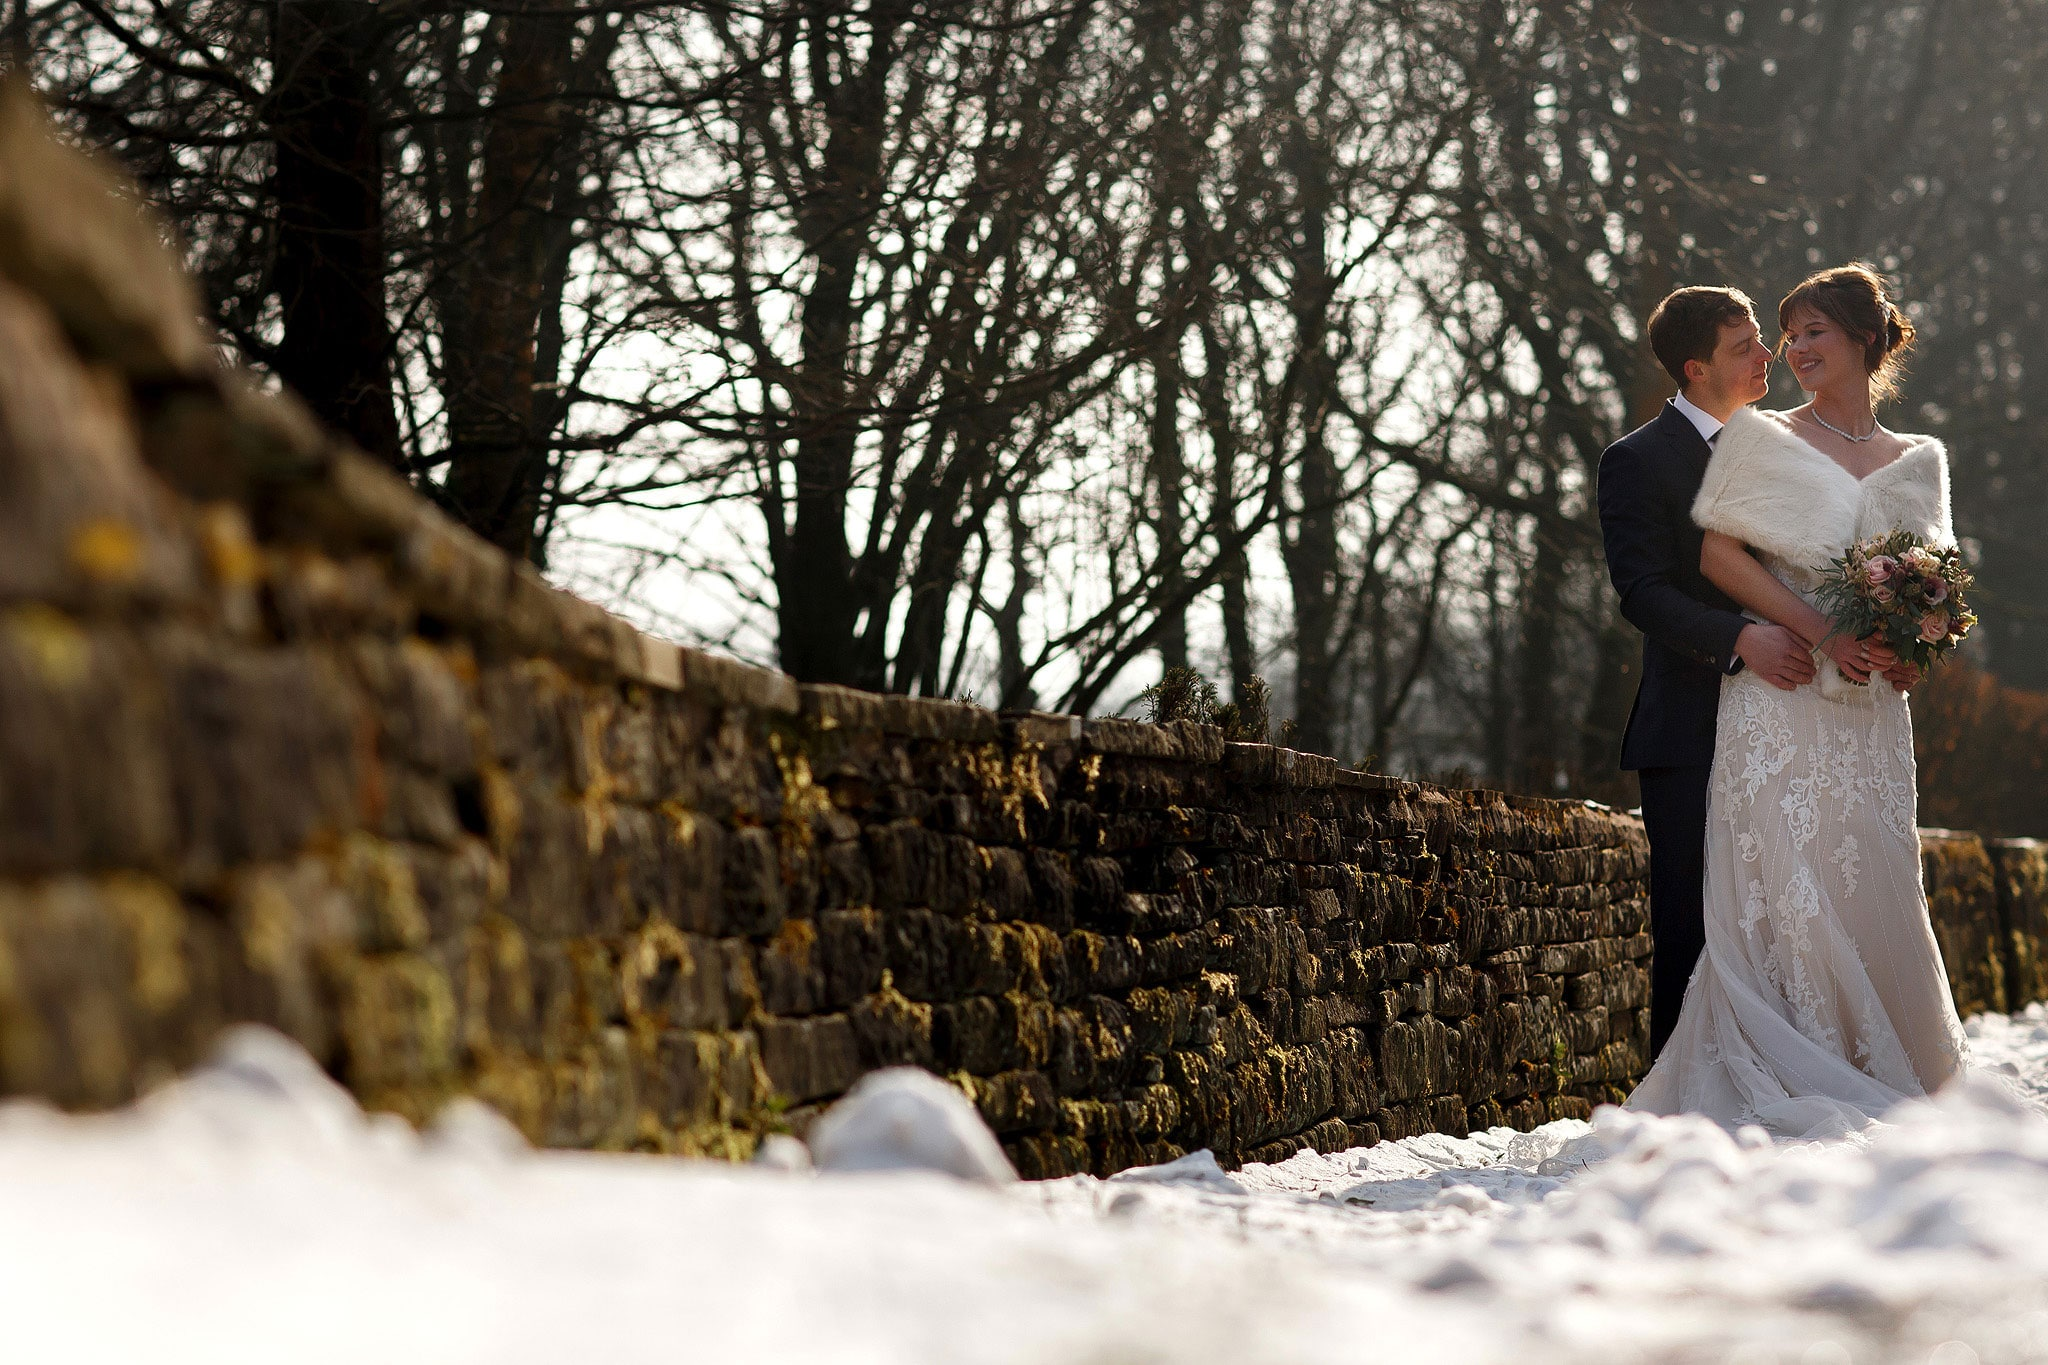 Bride wearing strapless lace wedding dress and fur shrug walking down the drive at Rivington Hall Barn on a snowy wedding day in February